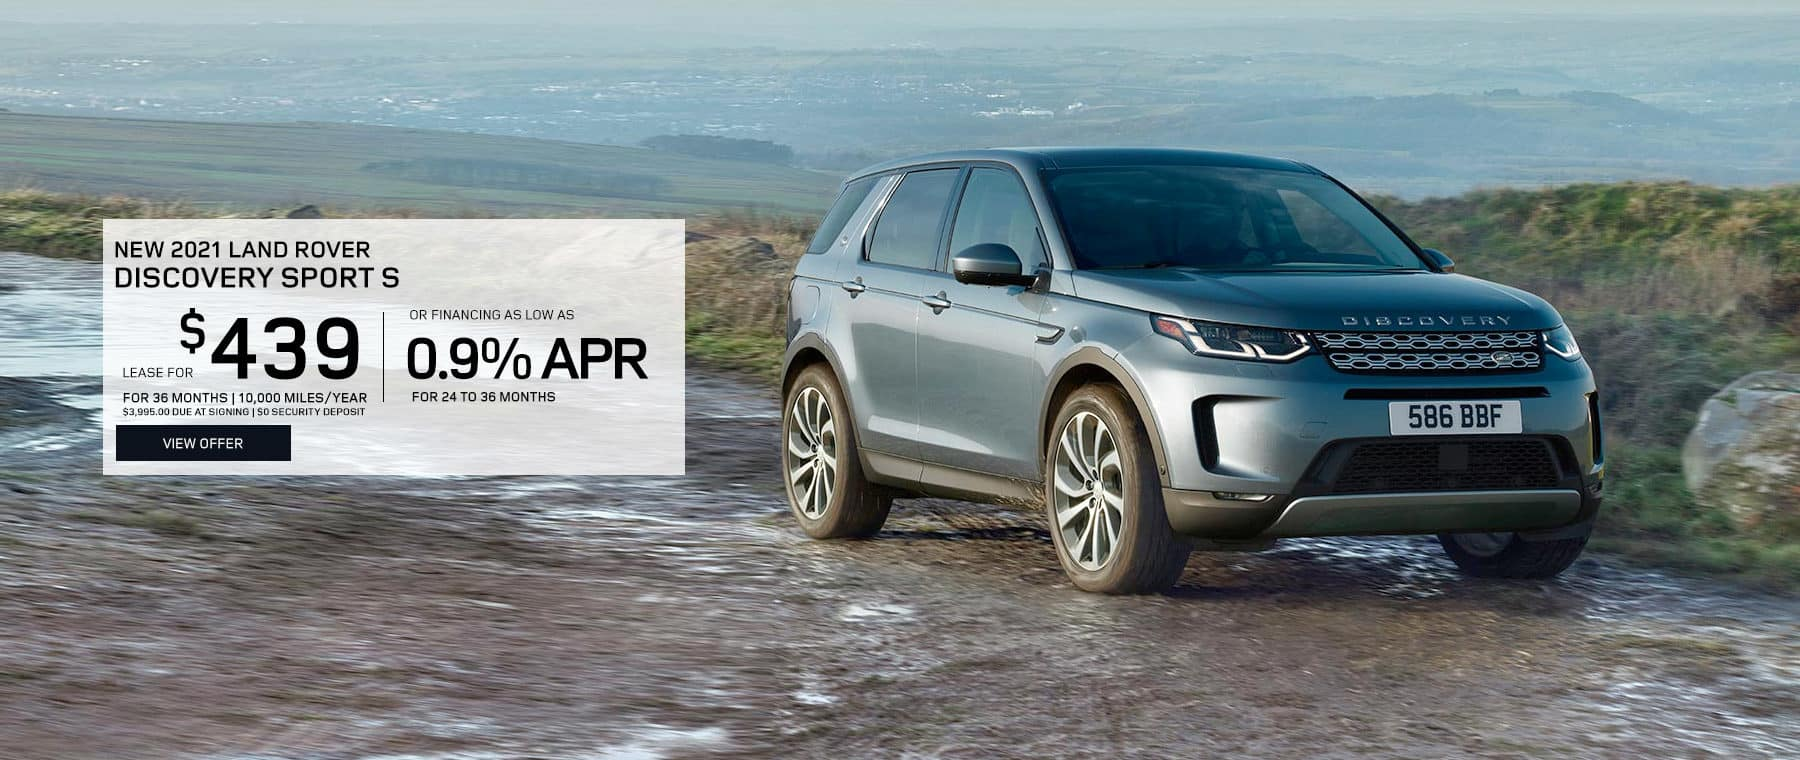 Discovery Sport Special